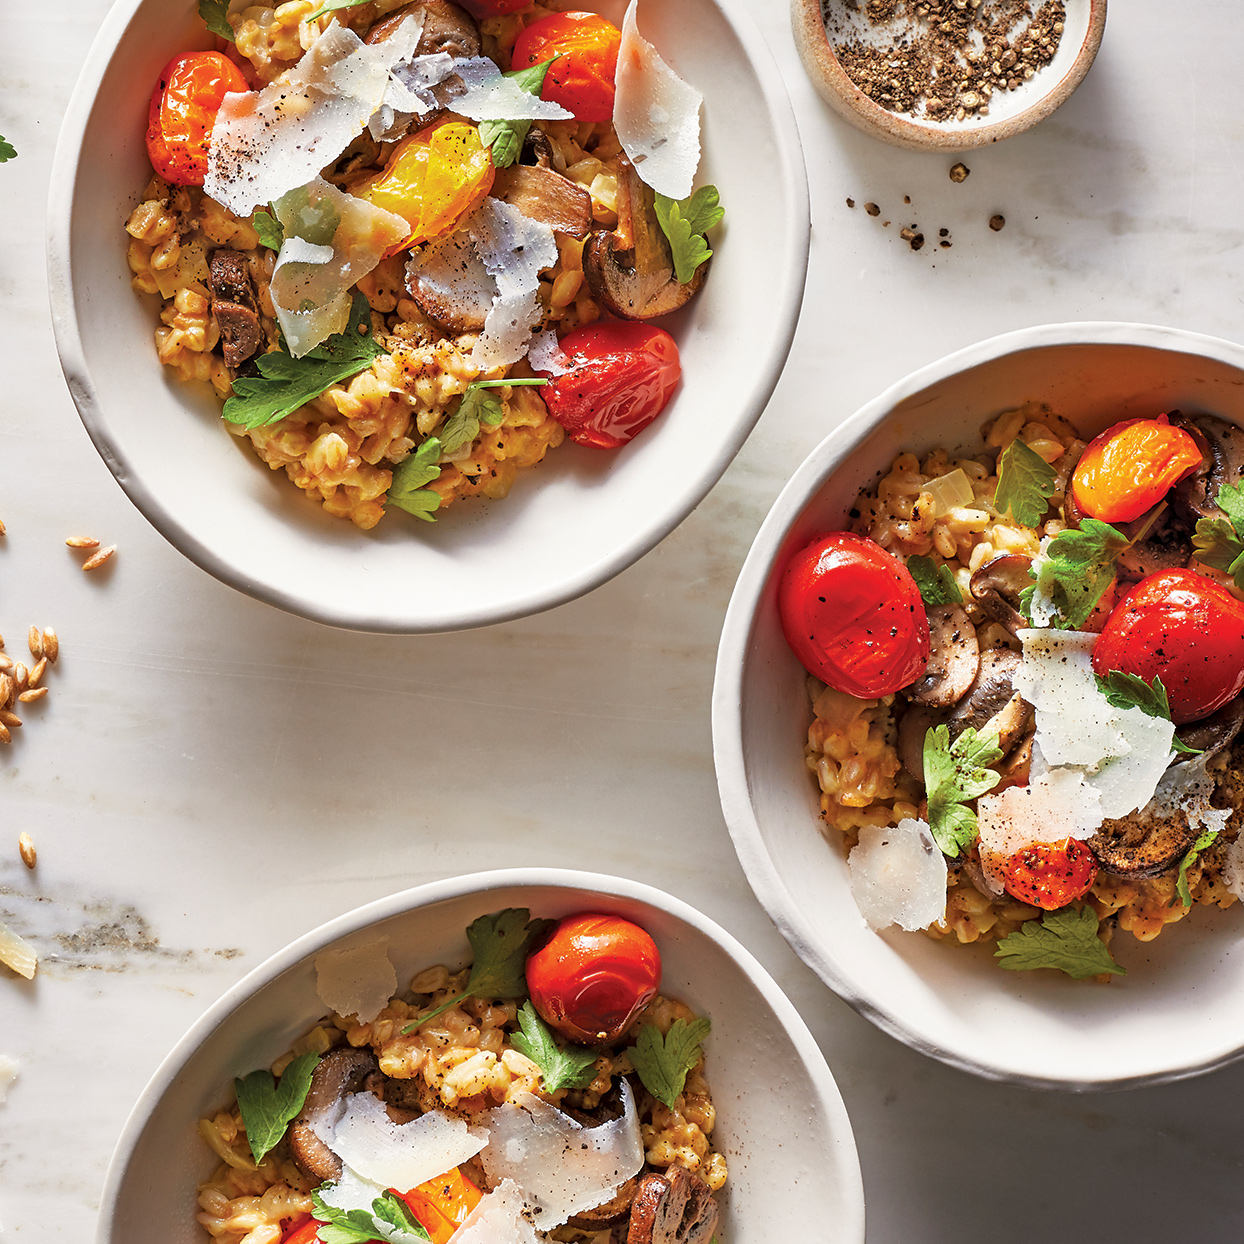 "Instead of arborio rice, this creamy grain dish features the bold nuttiness of farro, which pairs nicely with the black pepper and Parmesan. The cherry tomatoes add a nice touch of juicy sweetness, and the cremini mushrooms give a ""meaty"" feel to this vegetarian main dish. Source: 400 Calorie Recipes"